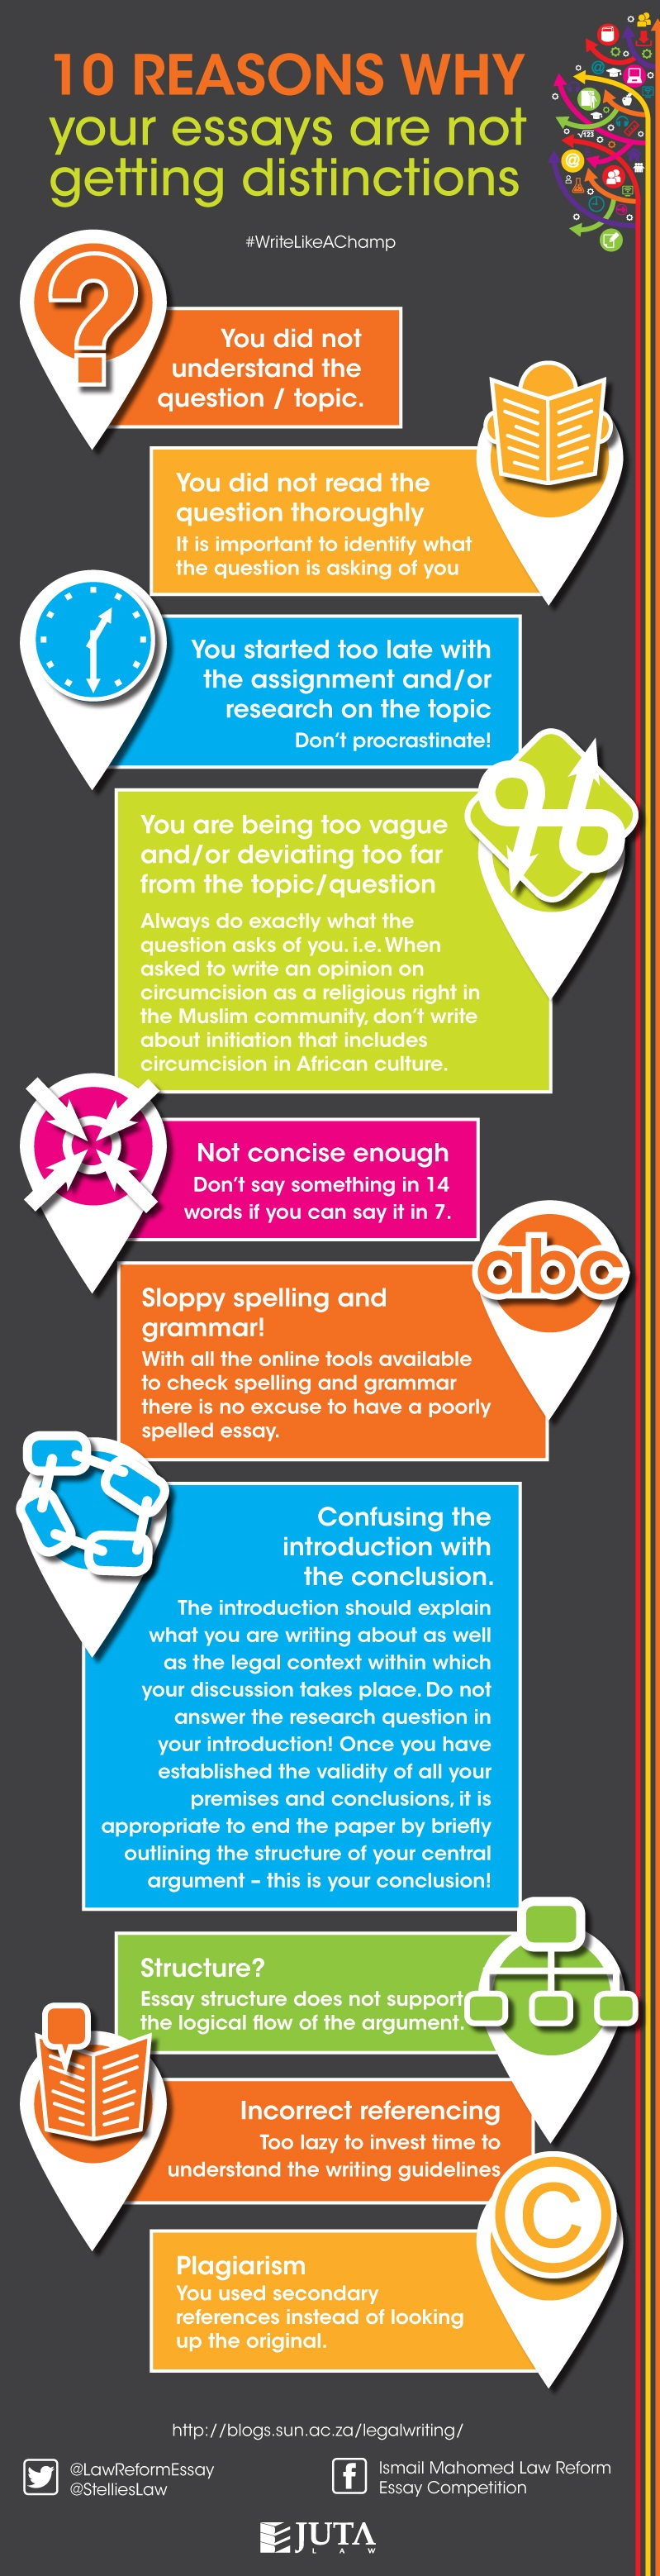 infographic the help of stellieslaw we listed the  infographic the help of stellieslaw we listed the 10 reasons why your essays